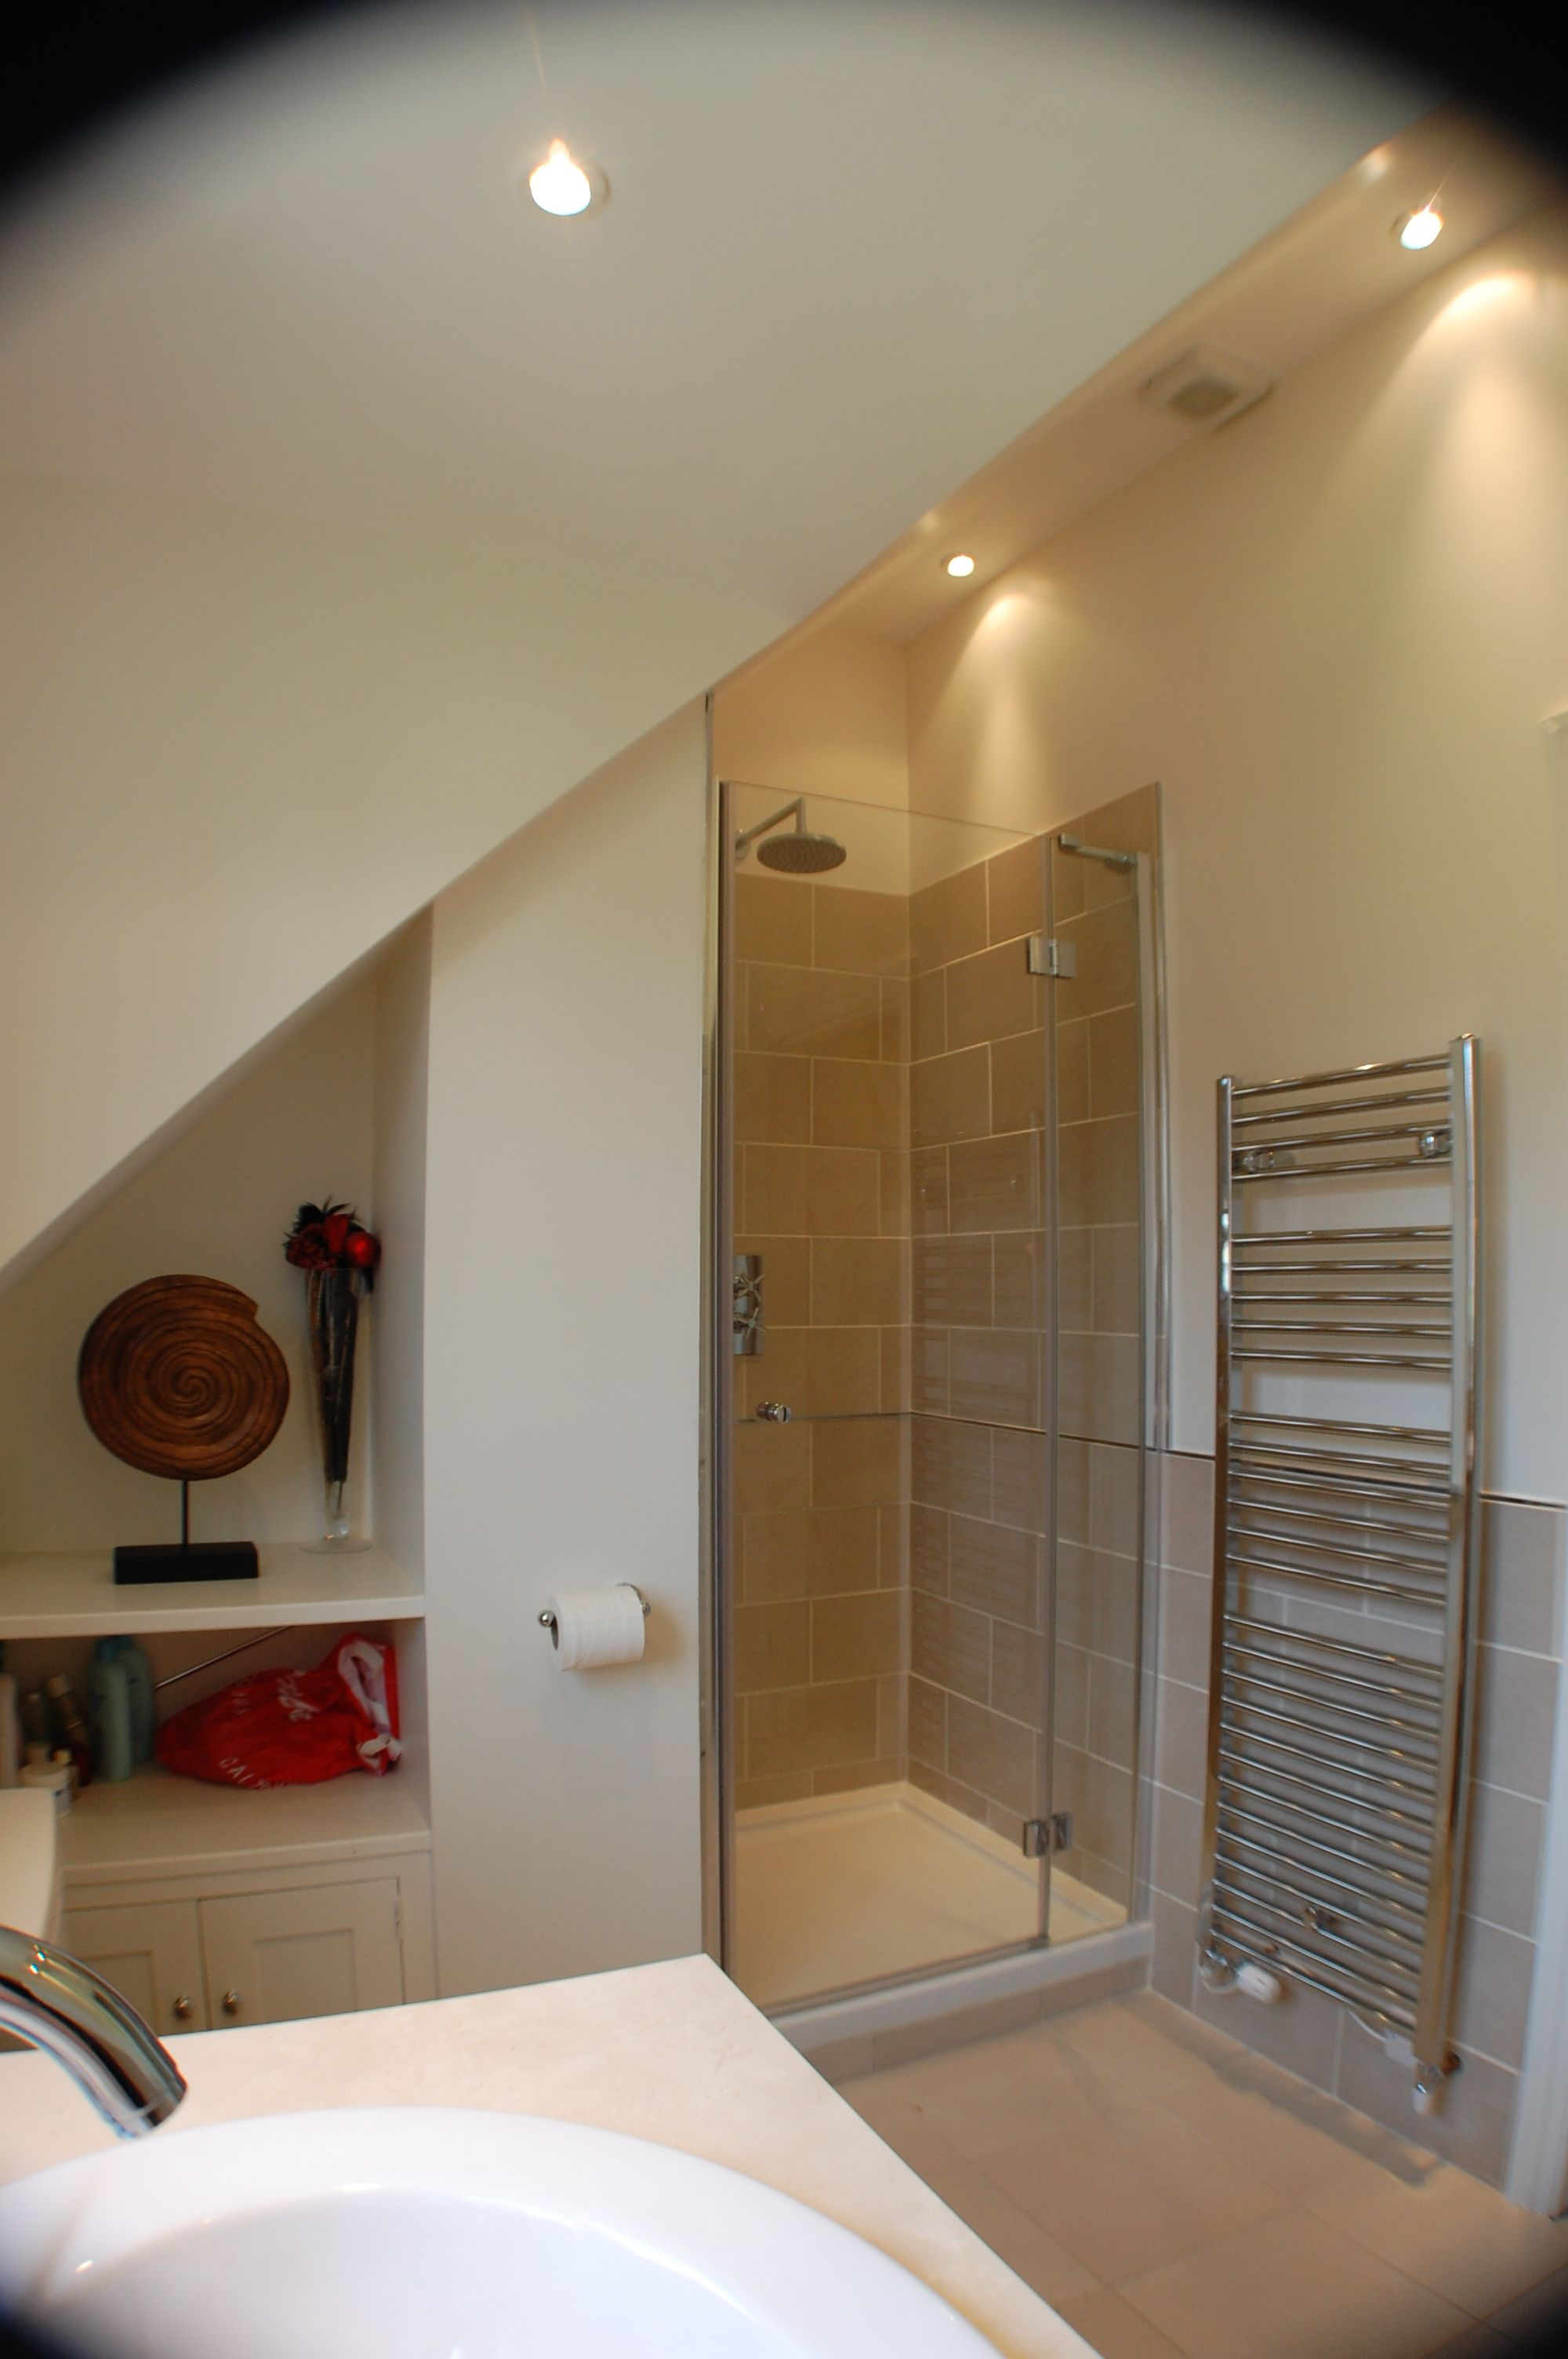 Shower Fitted Under Slope Of The Roof Upstairs Bathrooms Bathroom Shower Room